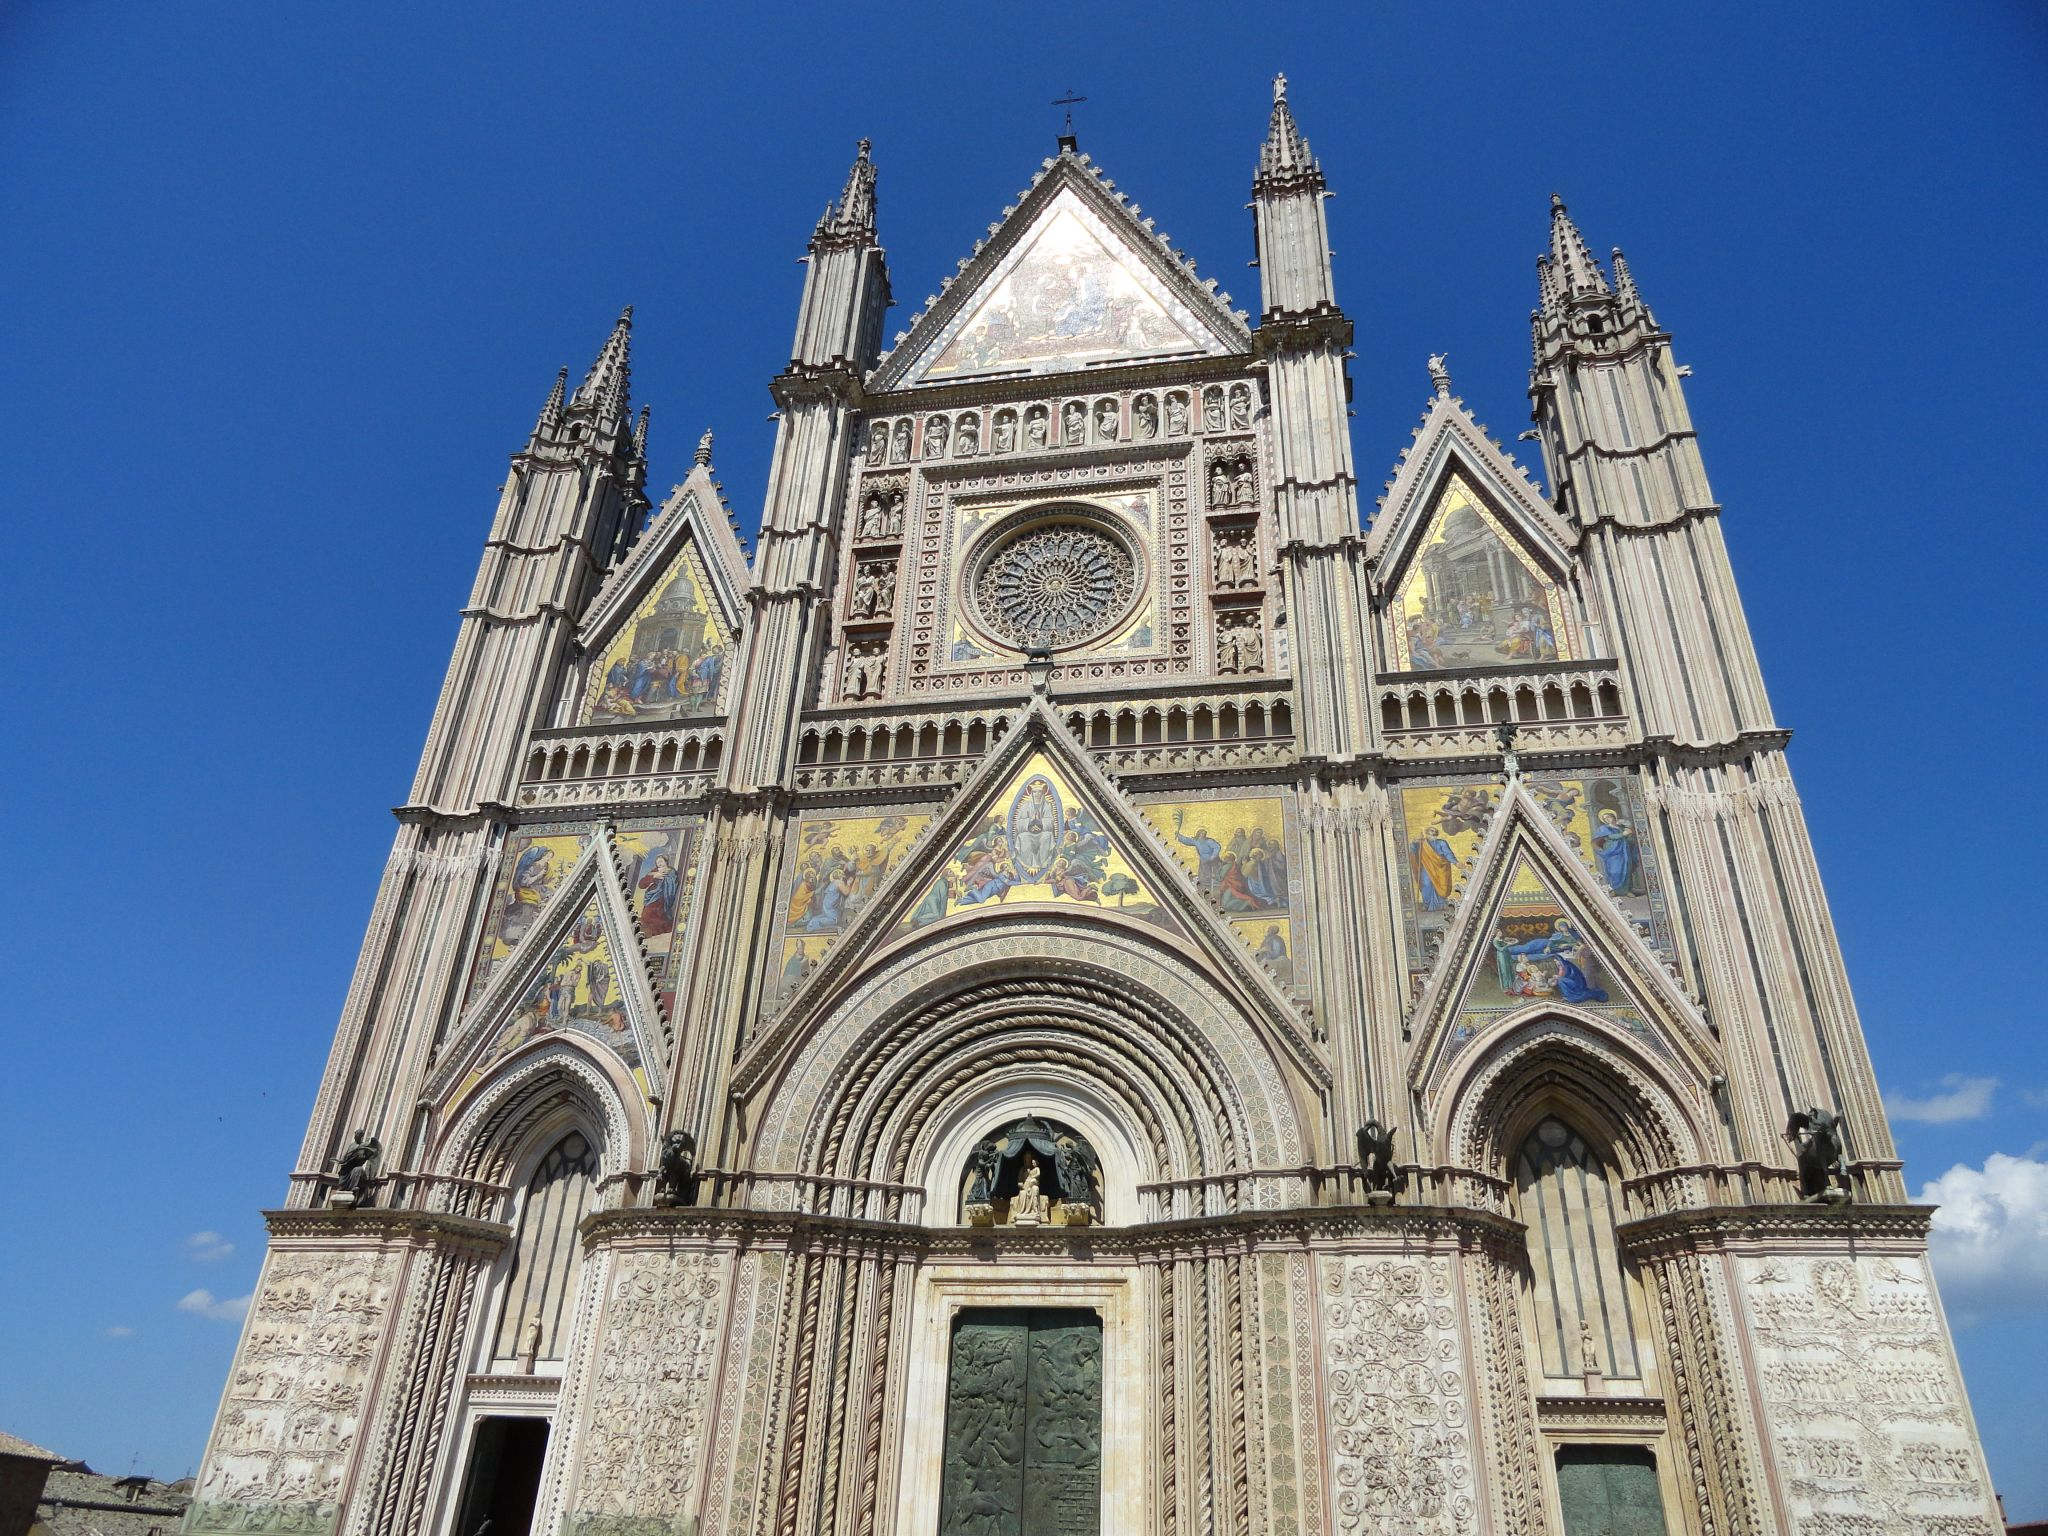 Orvieto is an easy day trip from Rome by train. Learn more about Orvieto and 9 othe amazing day trips from Rome by train!